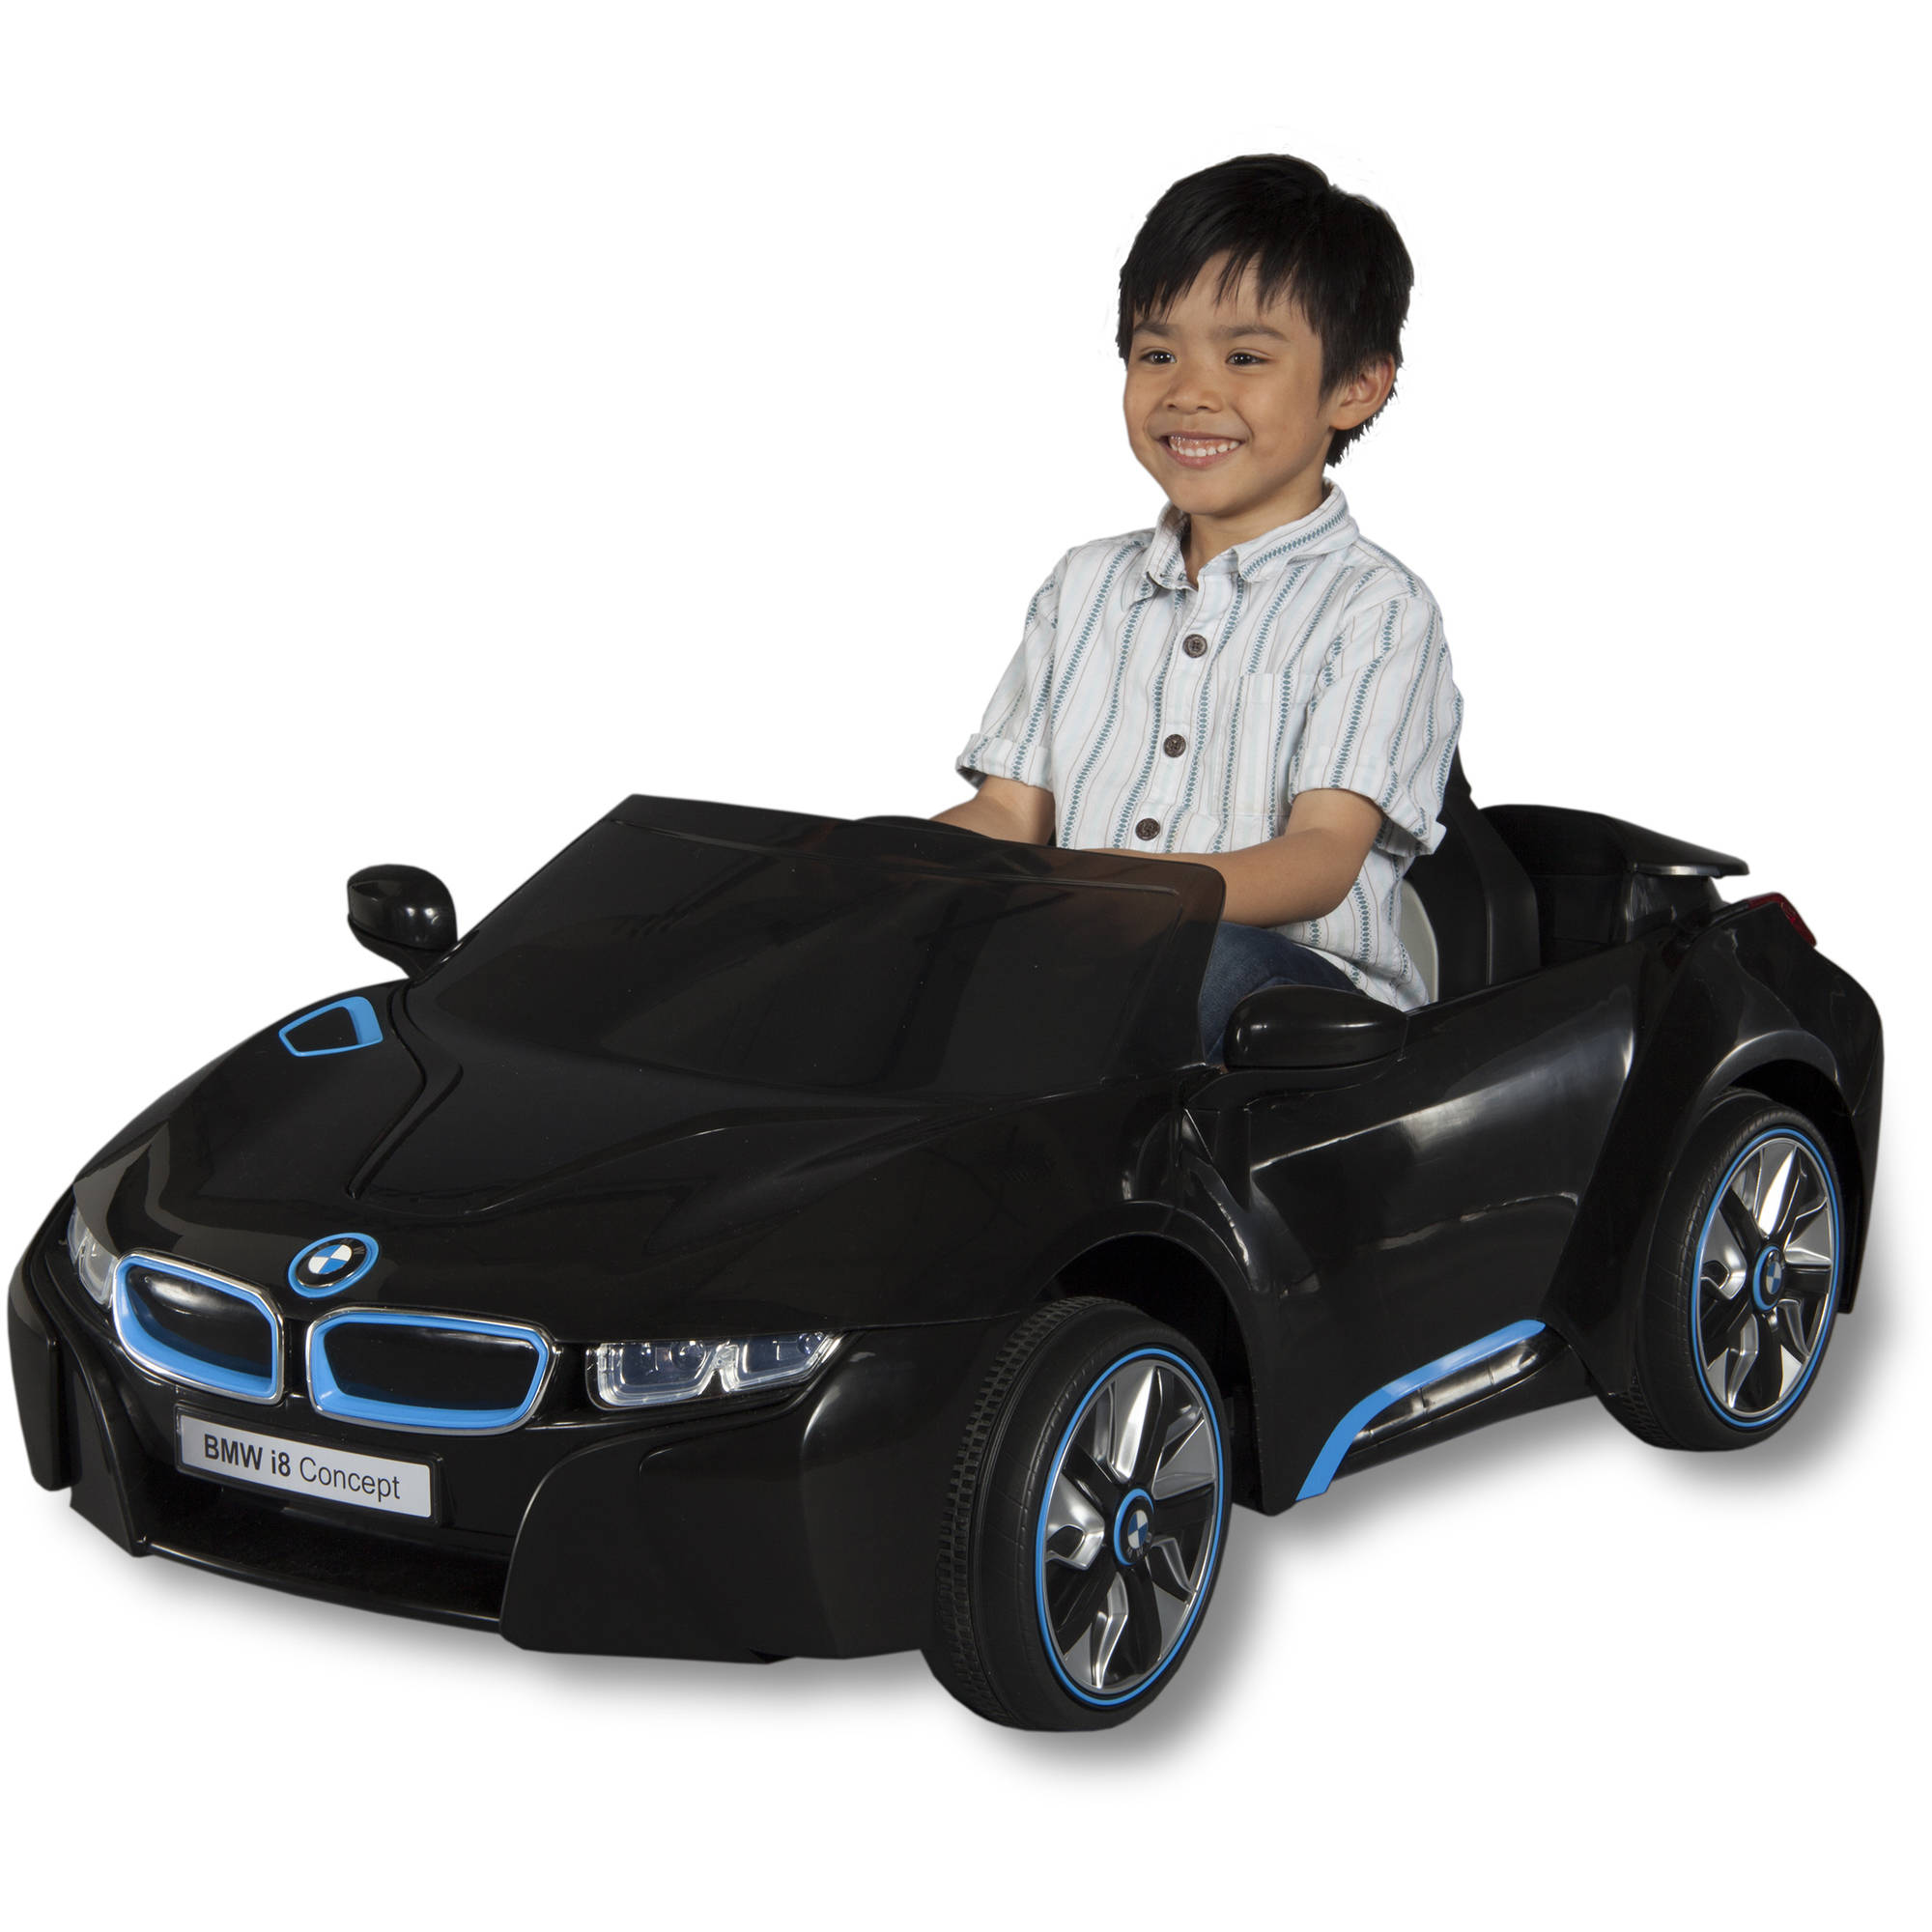 BMW 6V I8 Concept Car Battery-Powered Ride-On by Dynacraft BSC